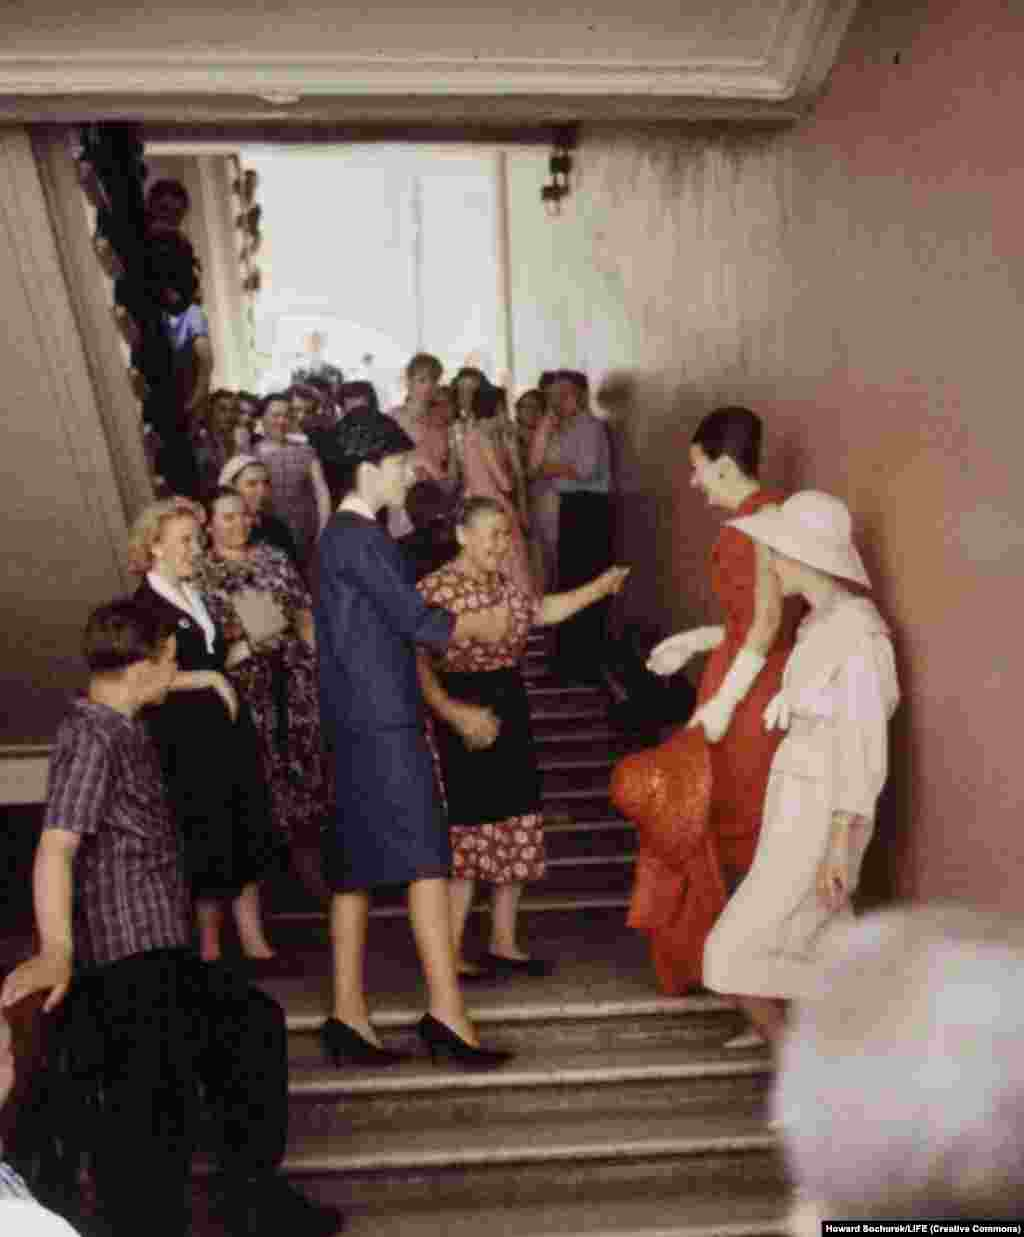 ...Sochurek captured candid interactions with the Soviet public.